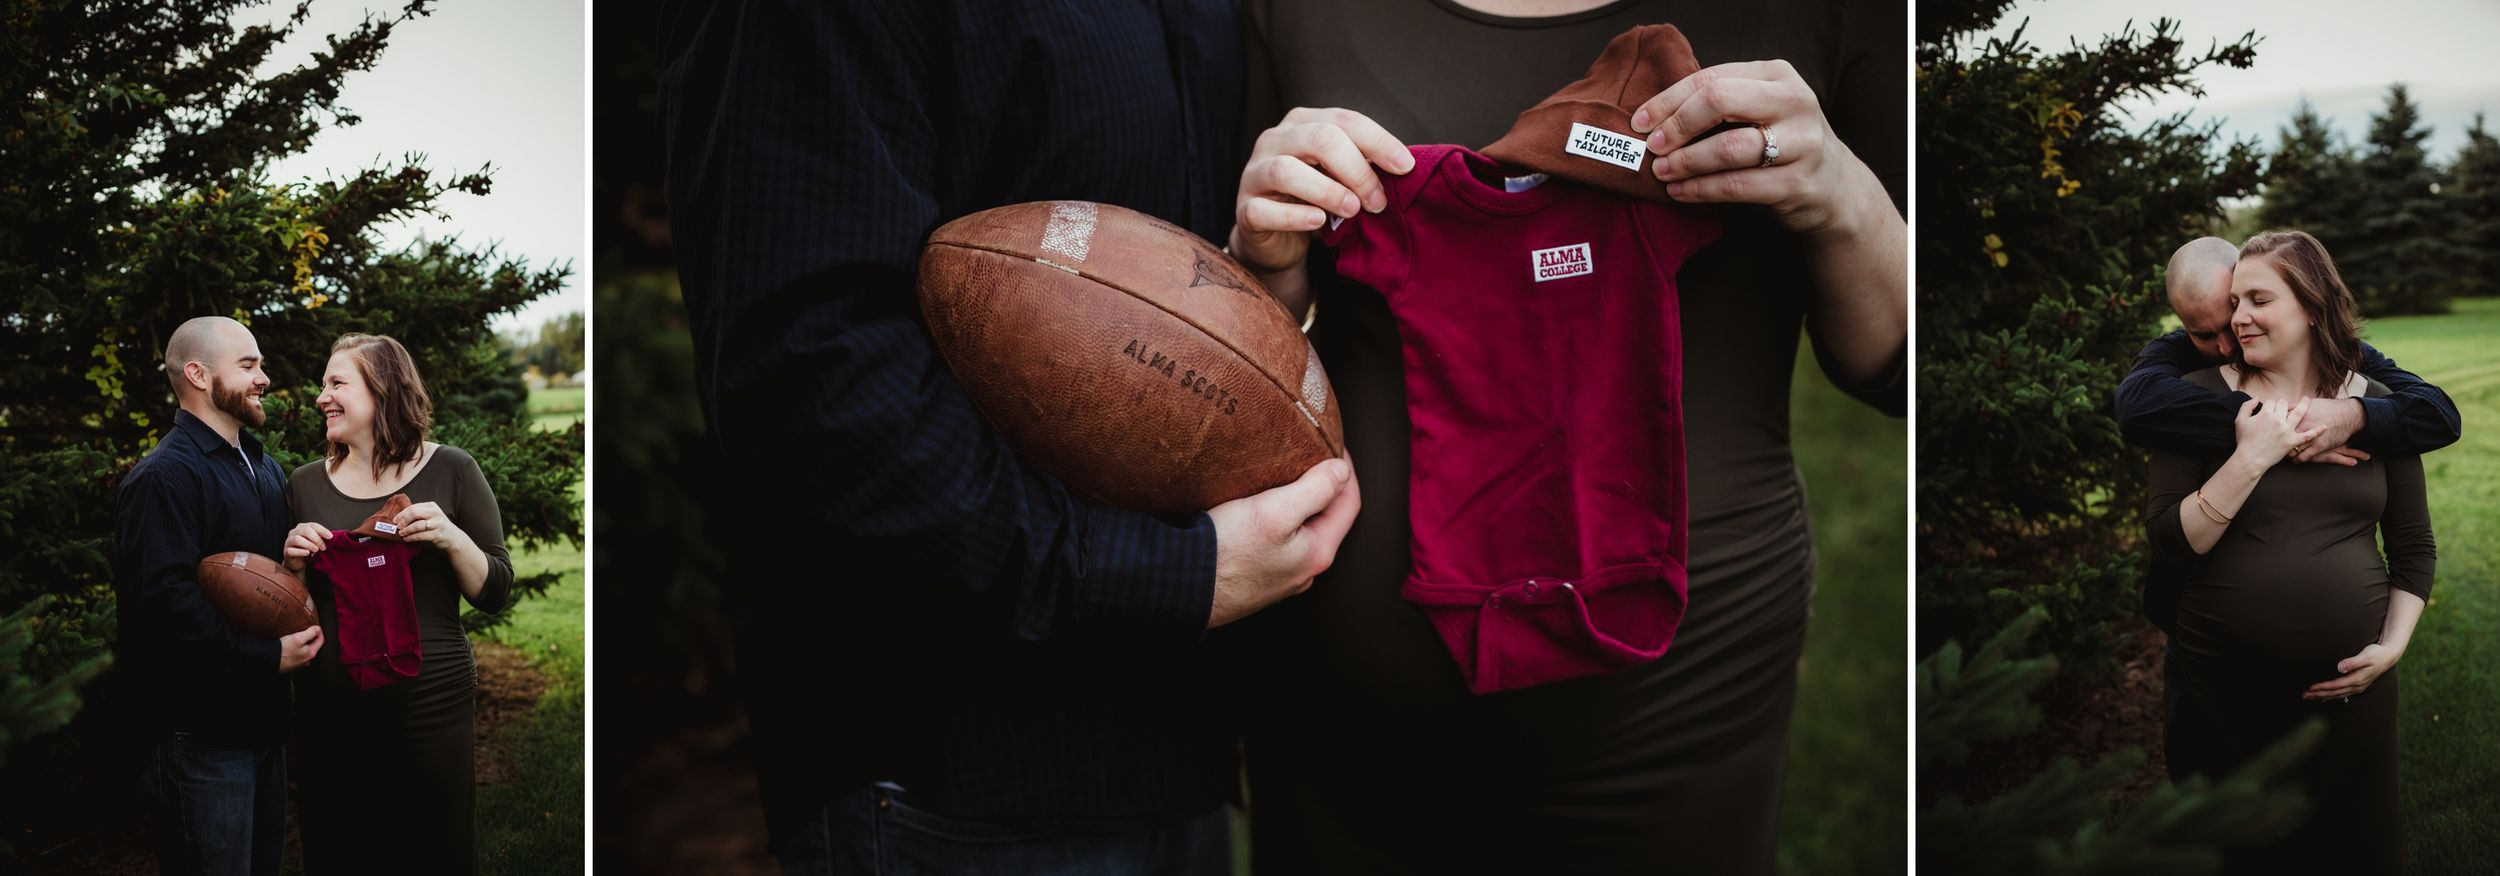 Pregnant woman and husband holding on Alma College onesie and a football.